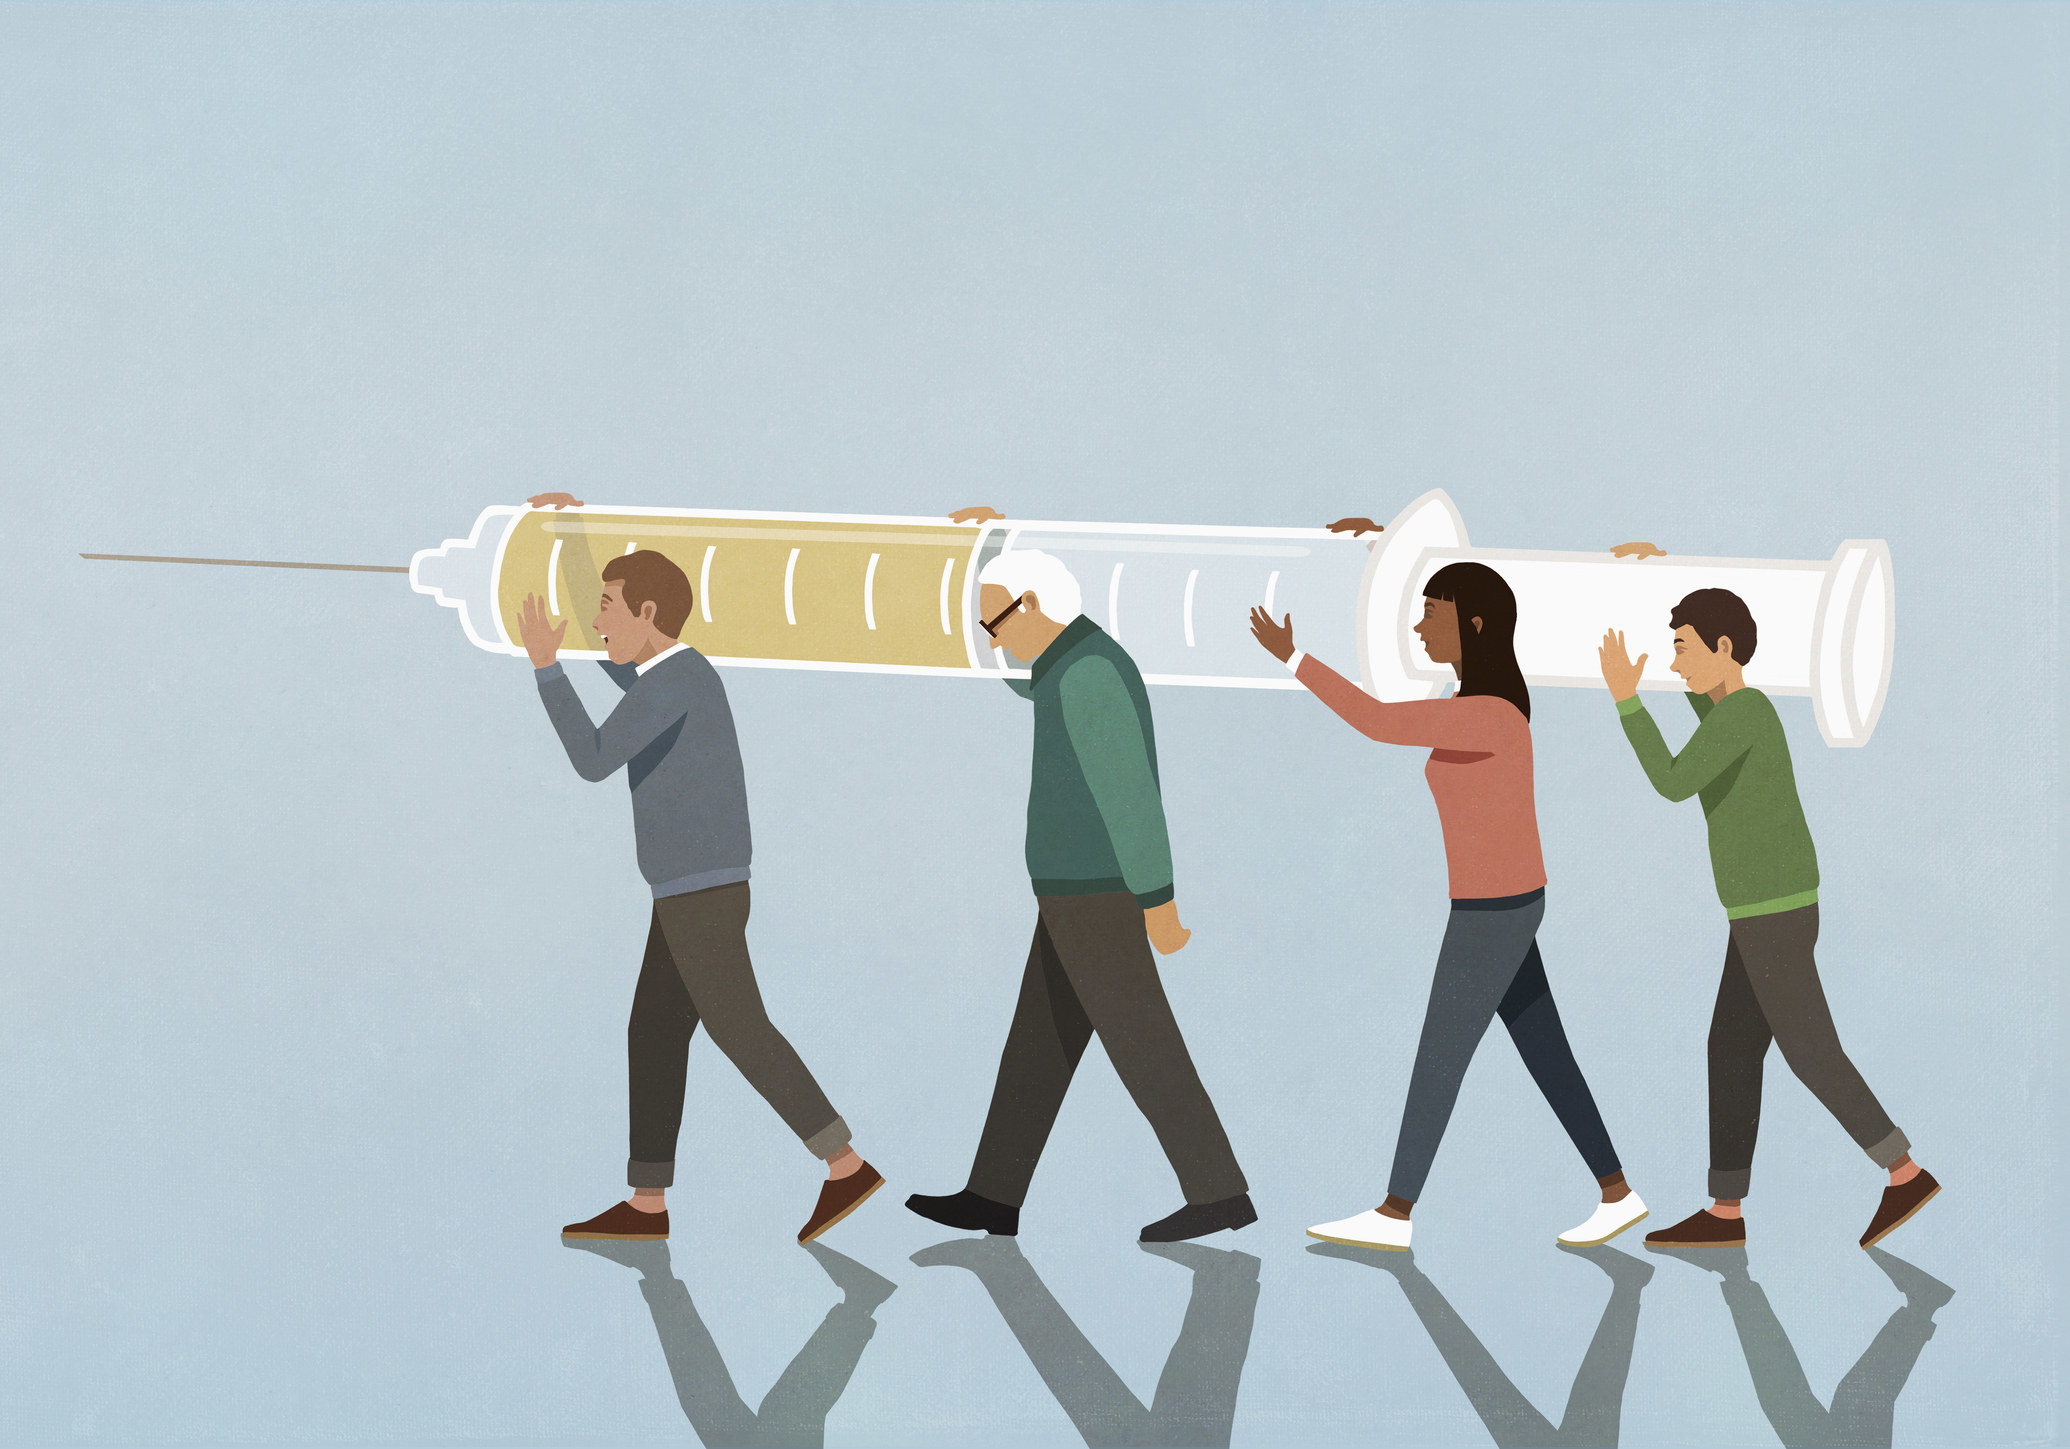 Illustration of people carrying vaccine